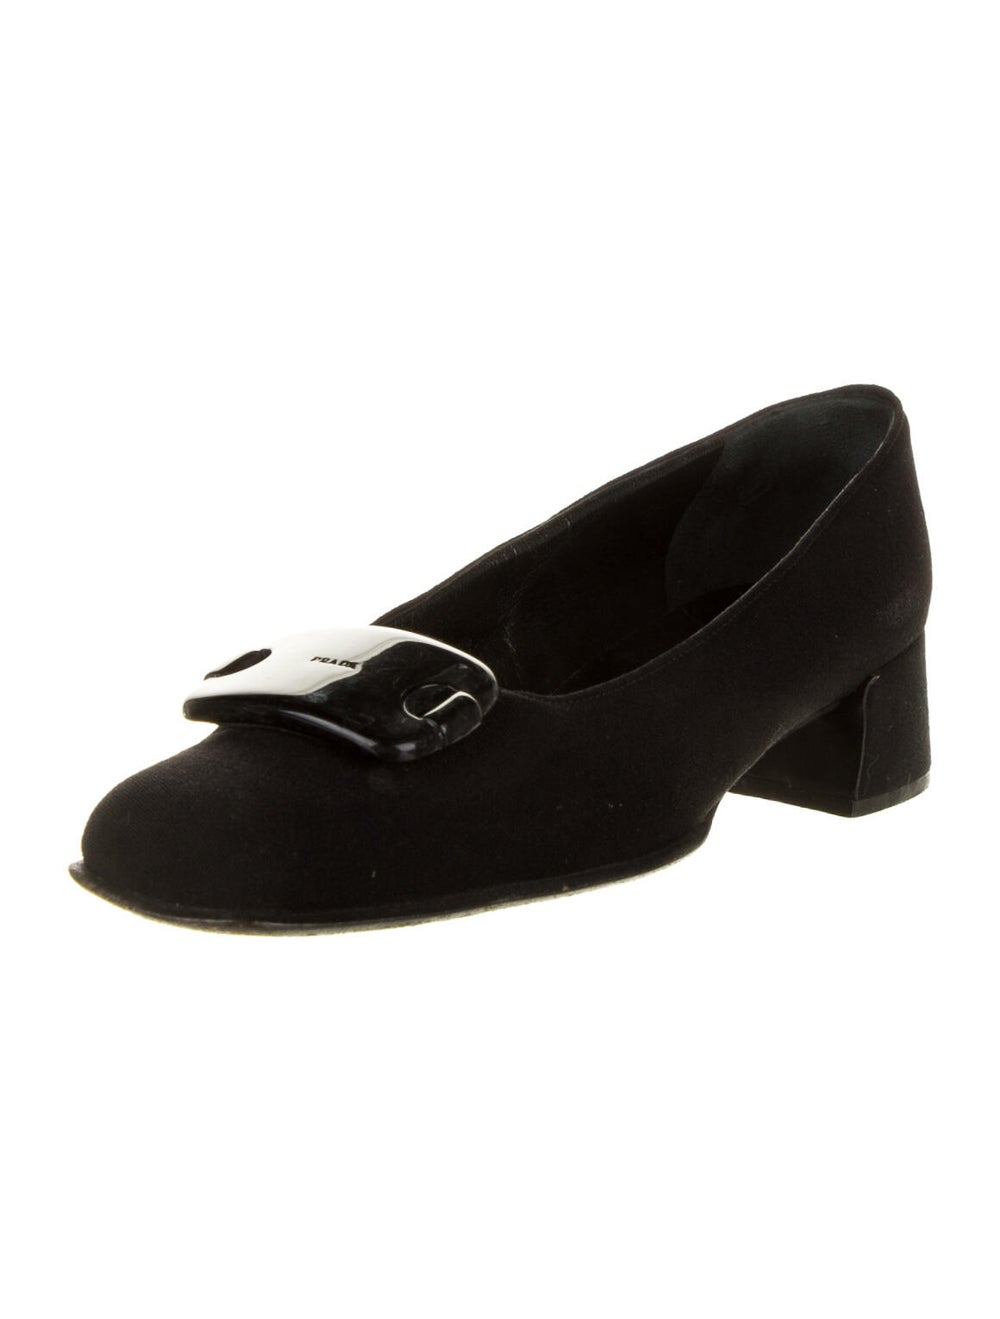 Prada Pumps Black - image 2